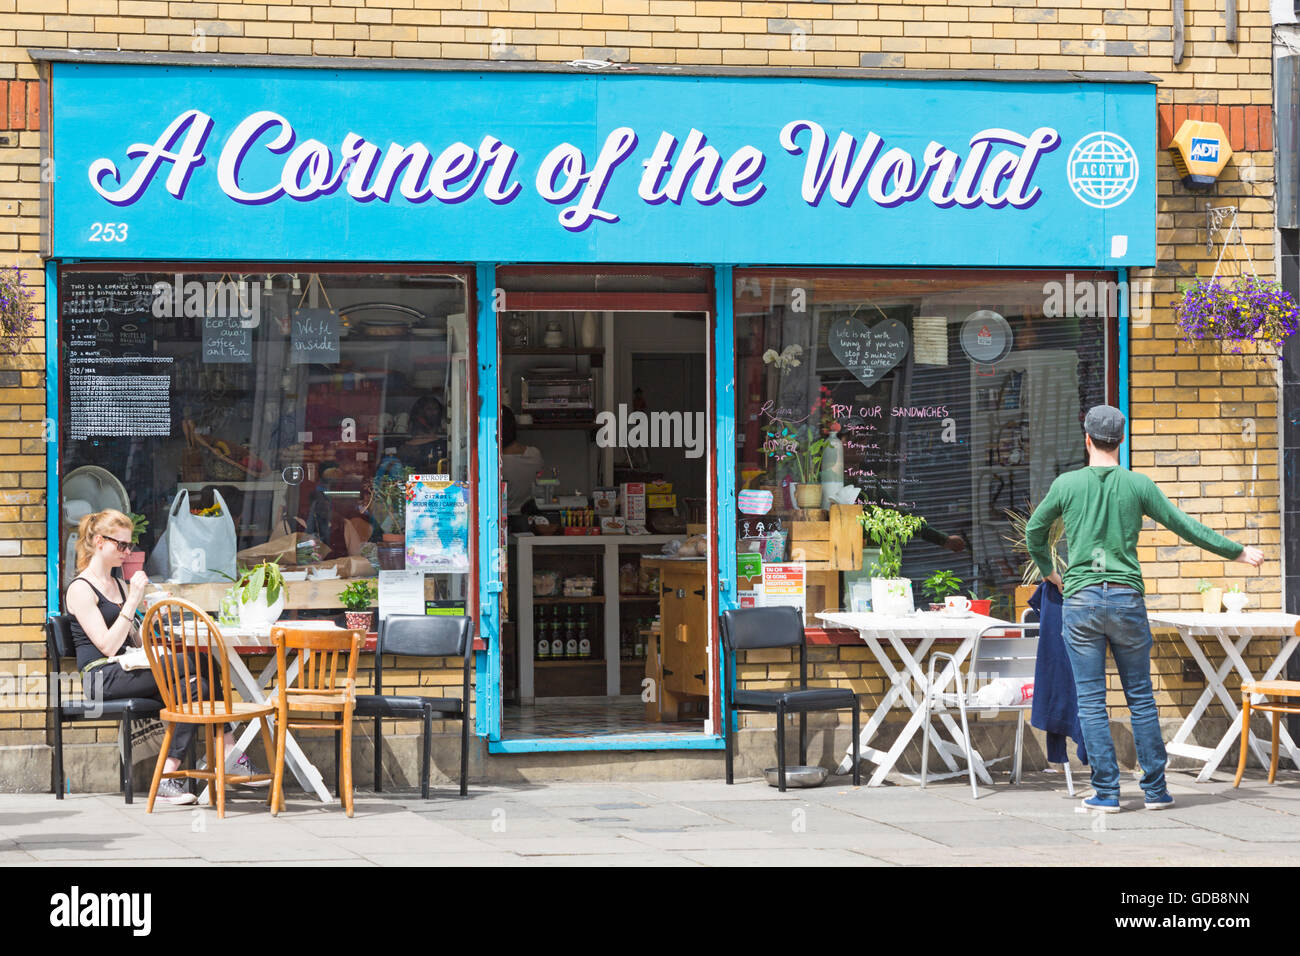 A Corner of the World restaurant at Bethnal Green Road, London in July - Stock Image